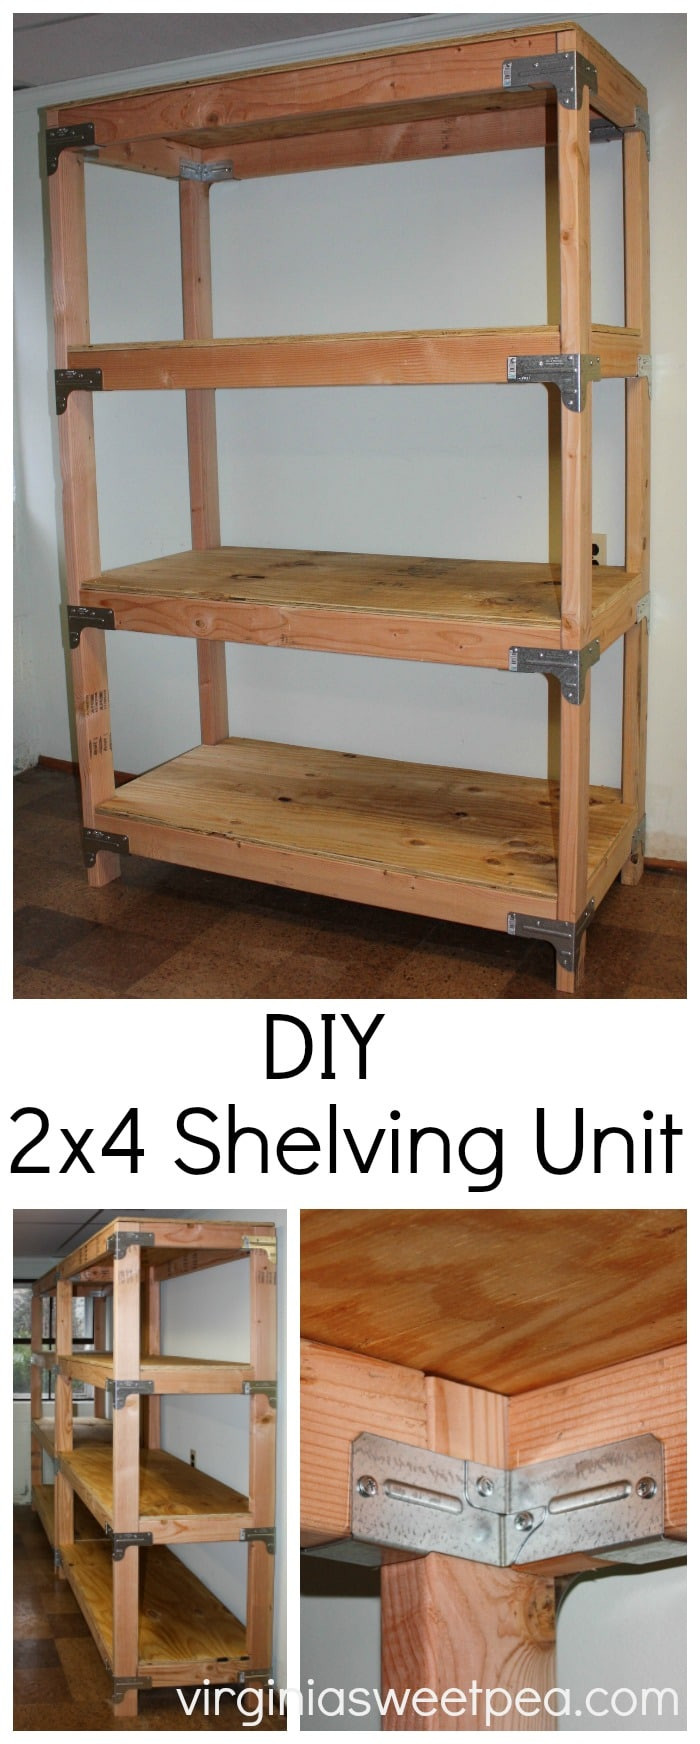 Best ideas about DIY Storage Shelf Plans . Save or Pin DIY 2x4 Shelving Unit Sweet Pea Now.